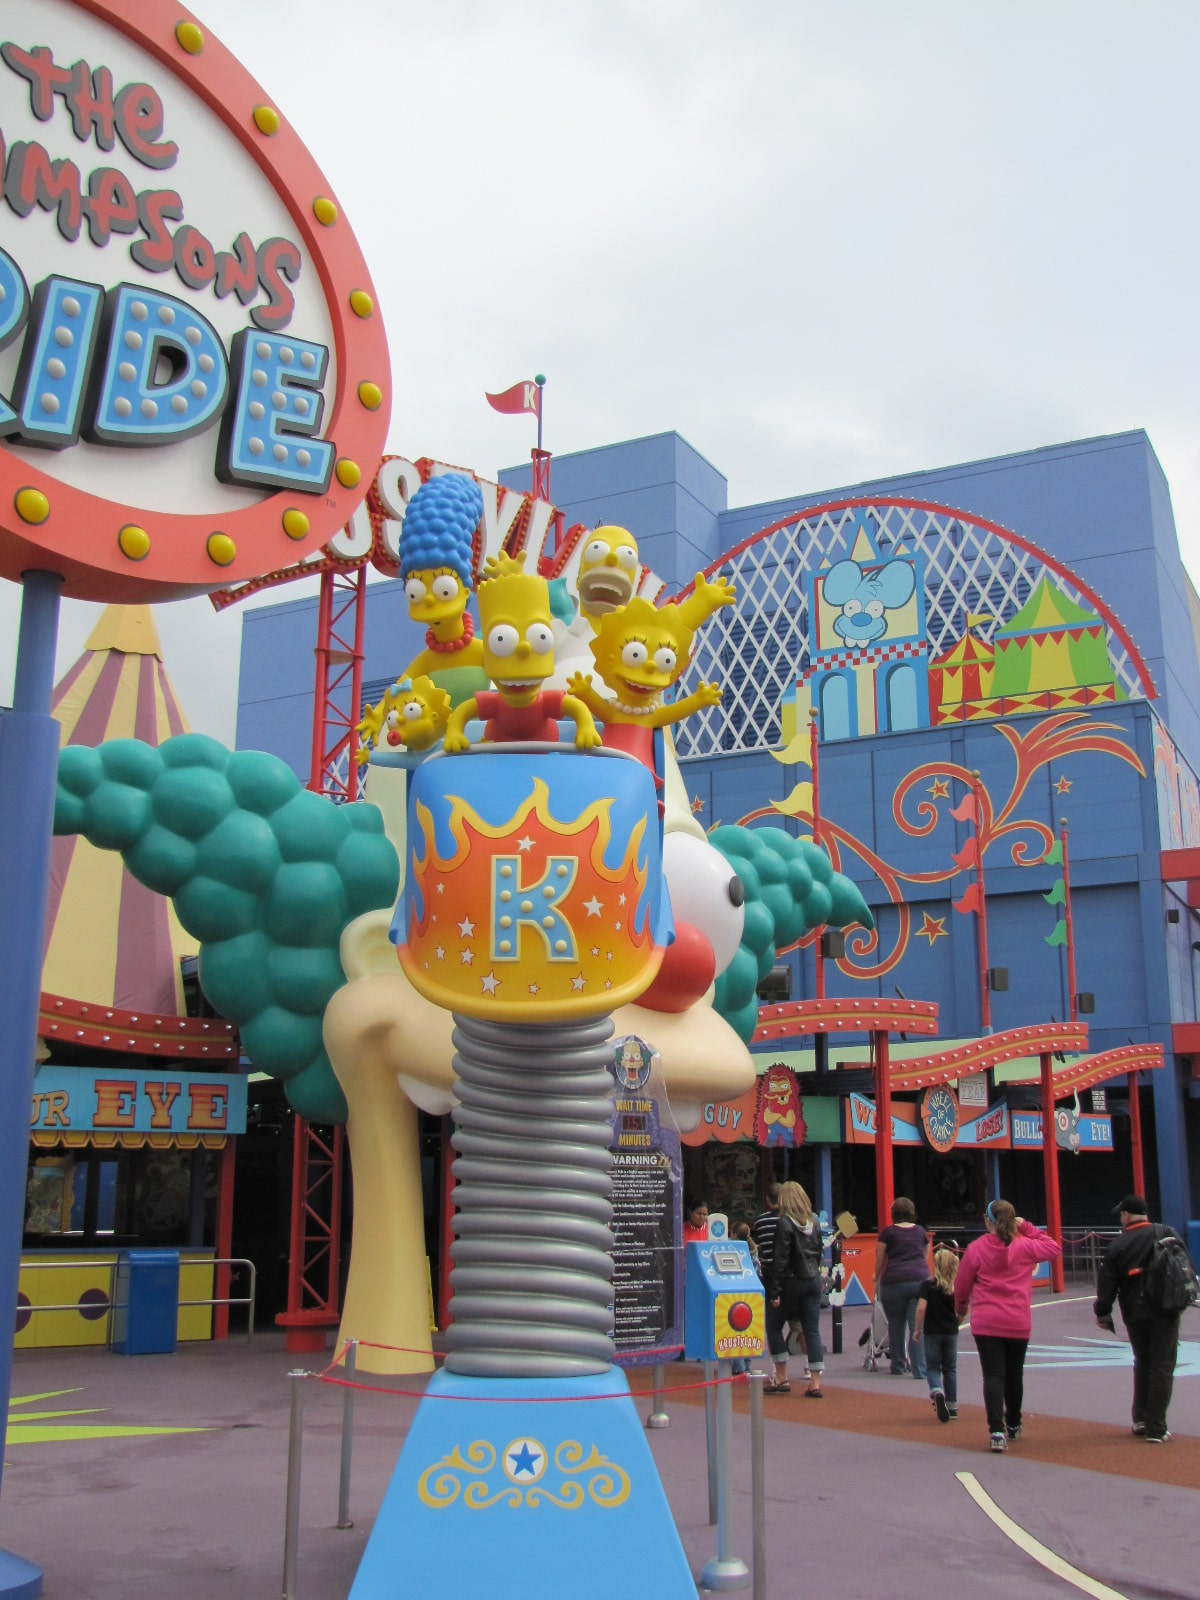 Entrée du Simpsons ride